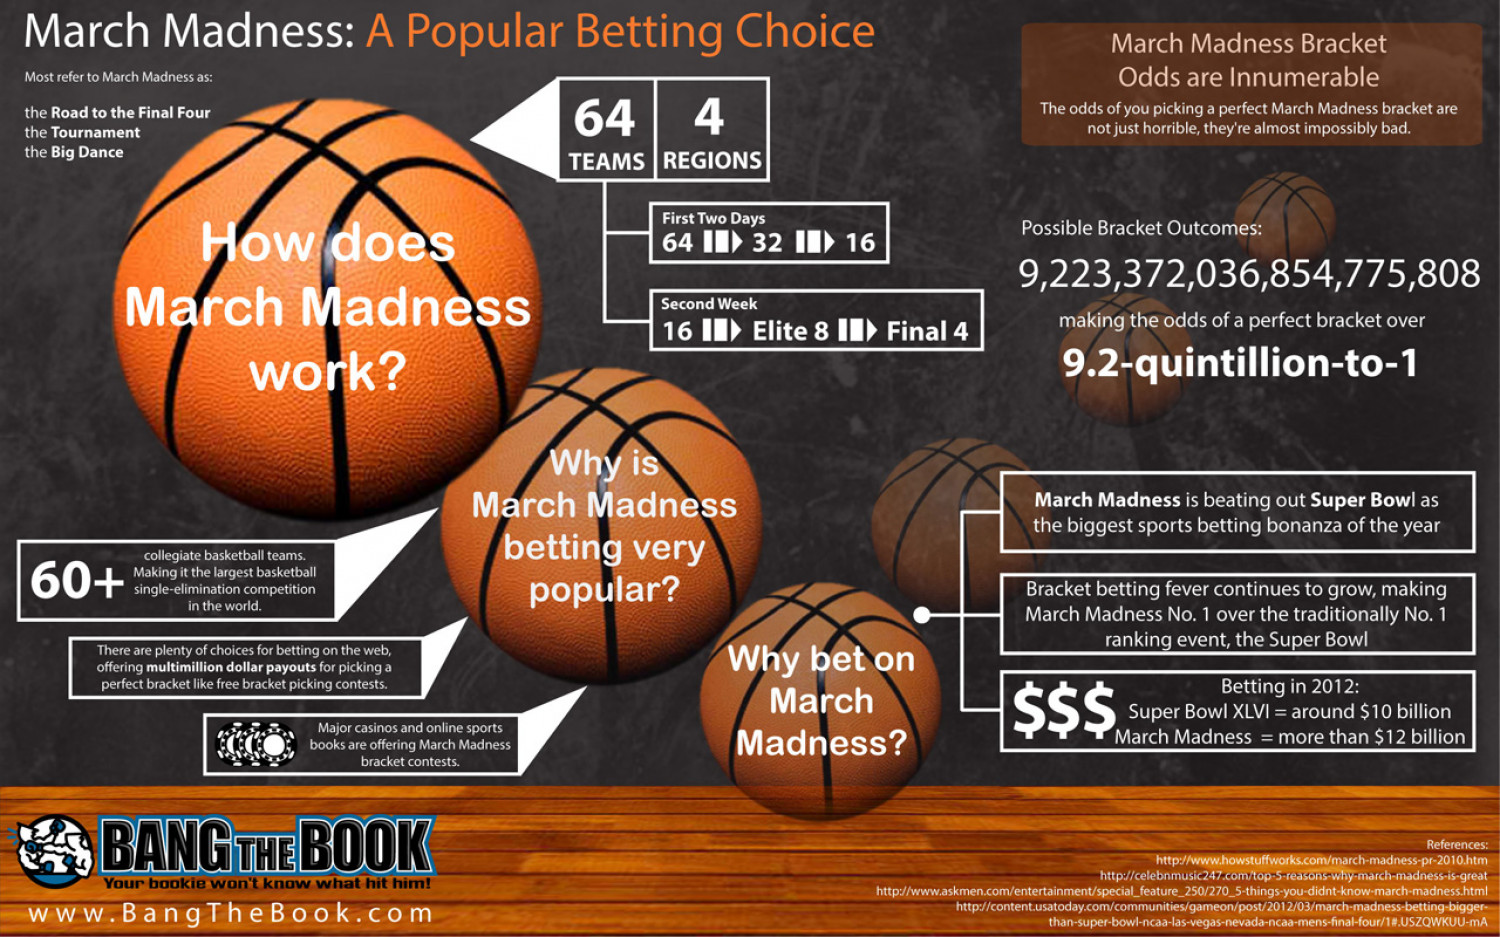 March Madness: A Popular Betting Choice Infographic